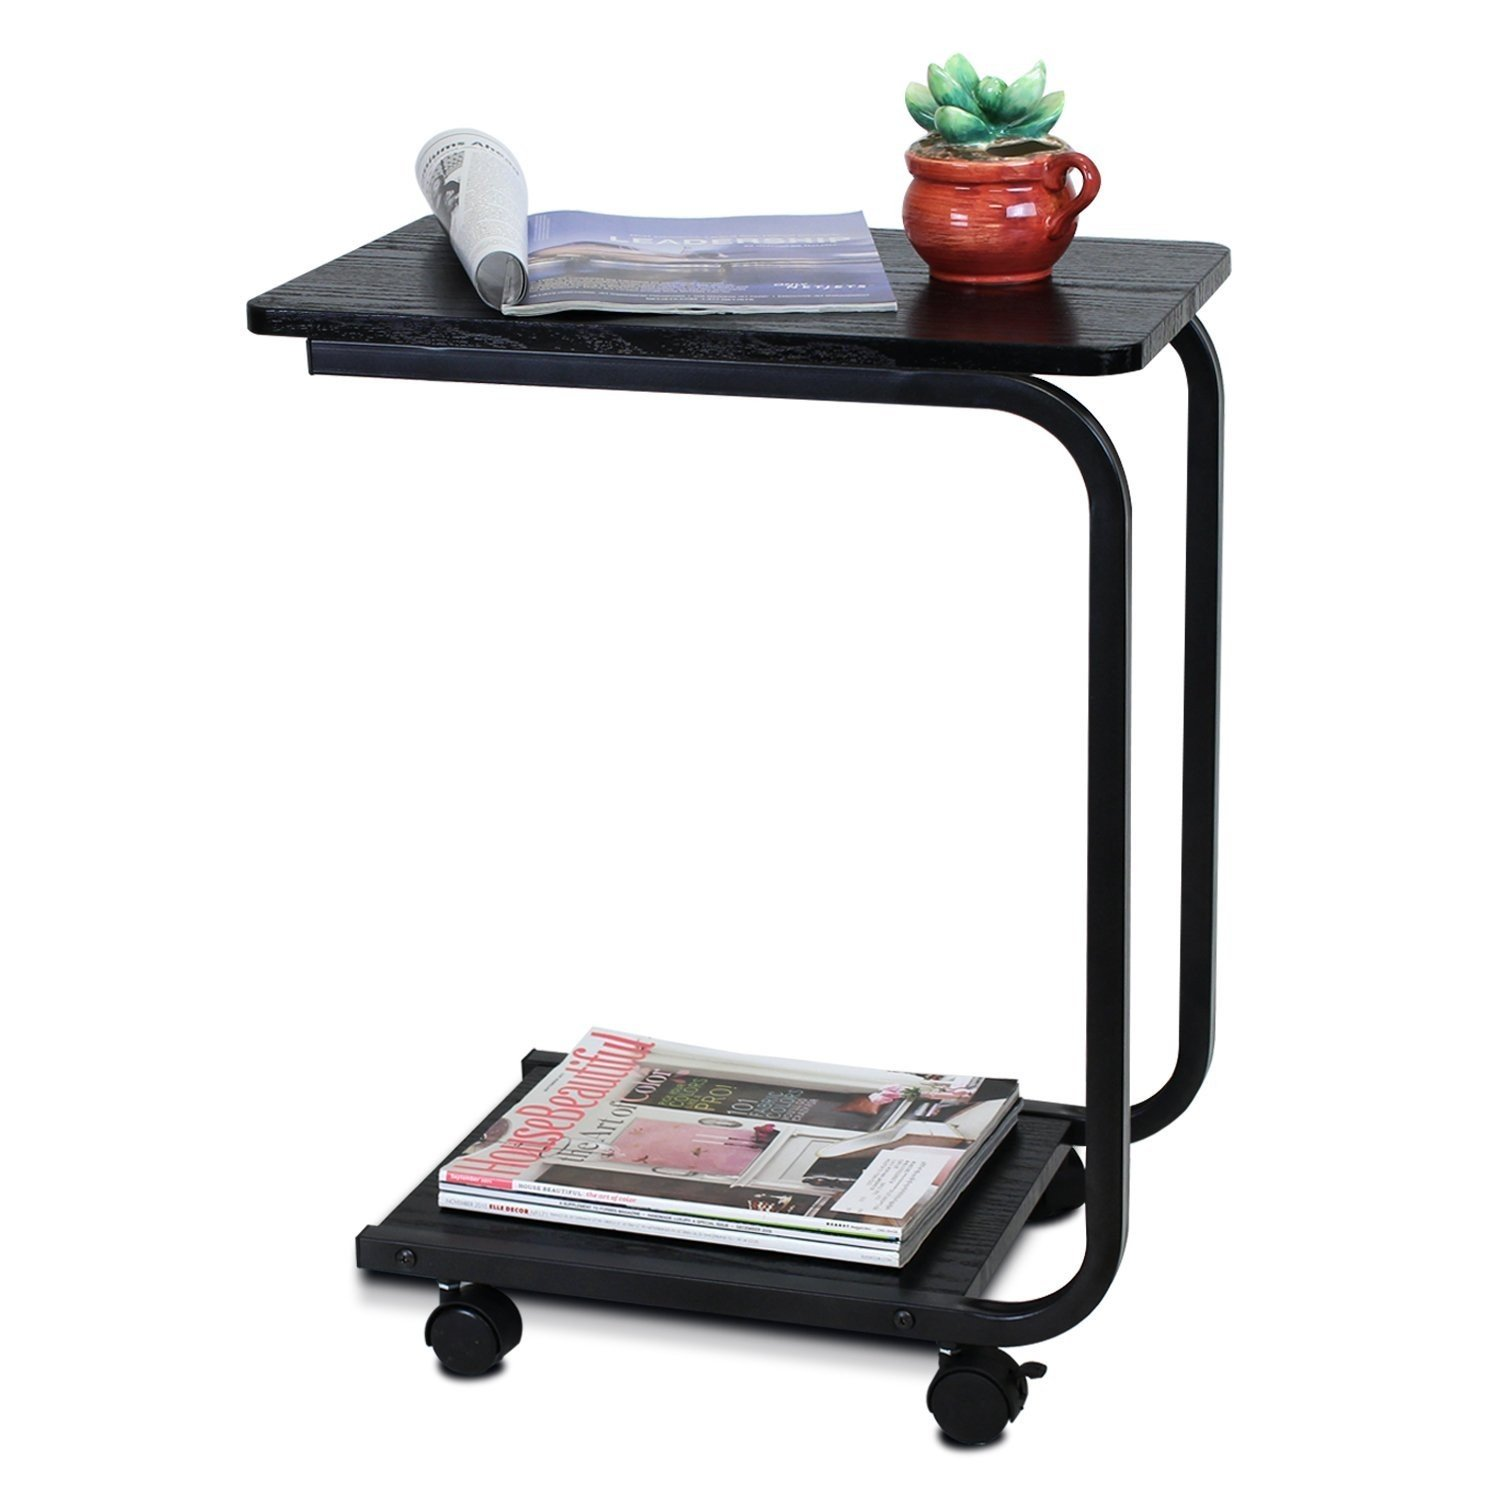 Indoor Multi-function Accent table Study Computer Desk Bedroom Living Room Modern Style End Table Sofa Side Table Coffee Table Black Desktop